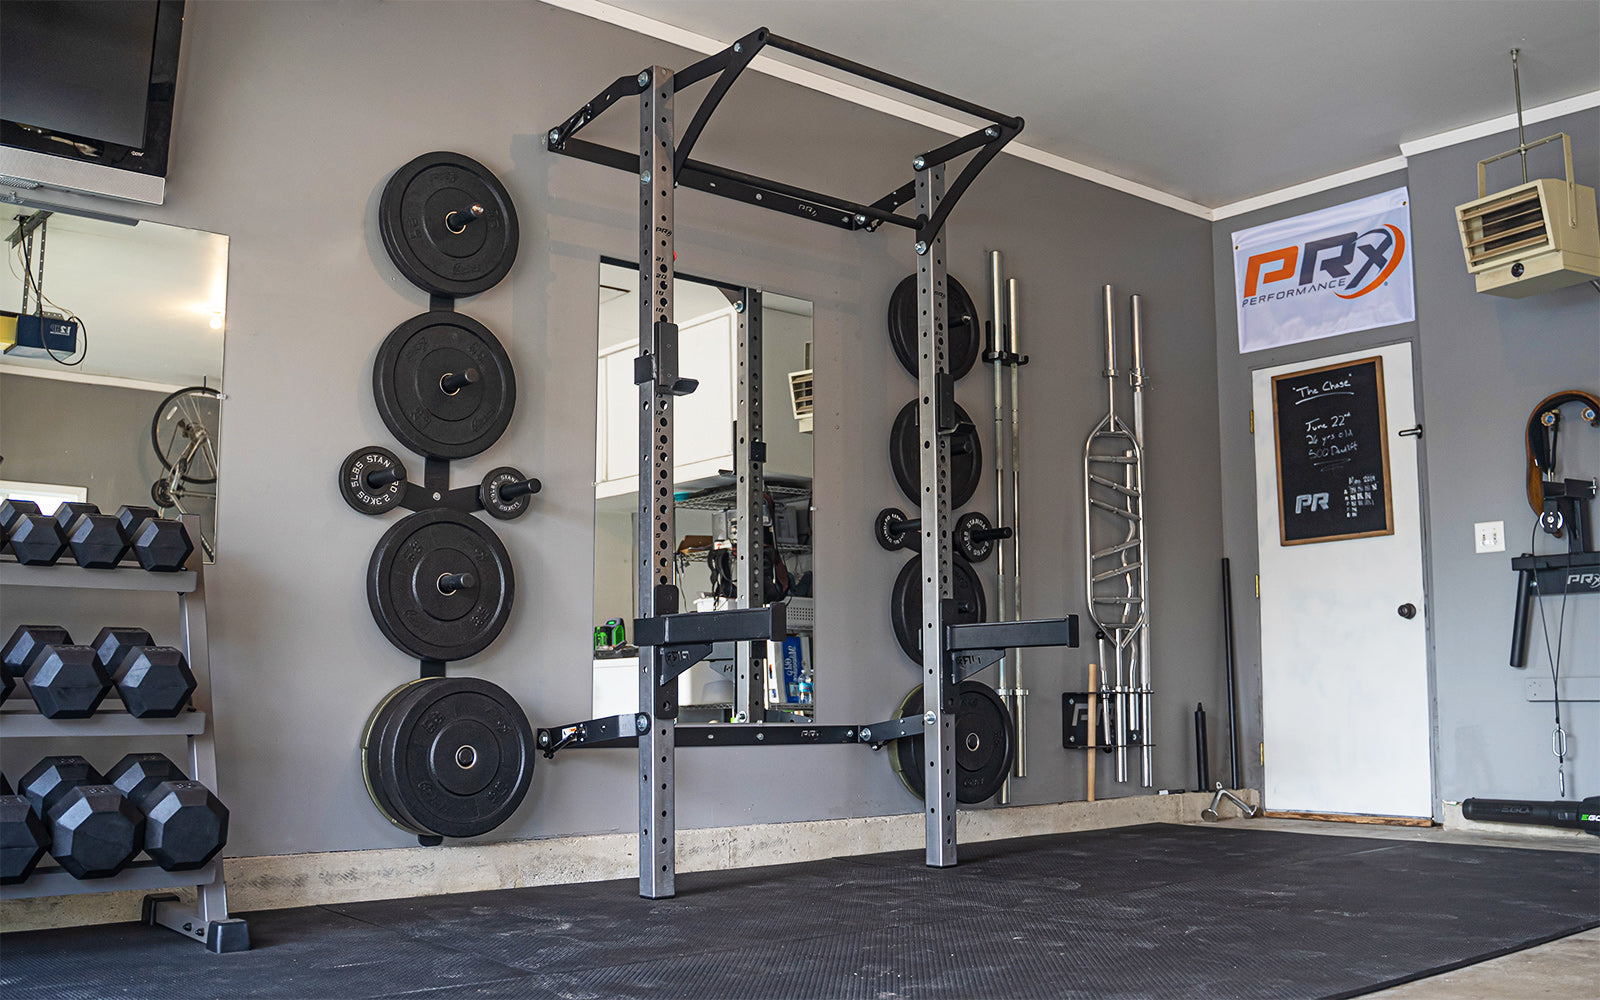 Prx Performance Lift Big In Small Spaces As Seen On Shark